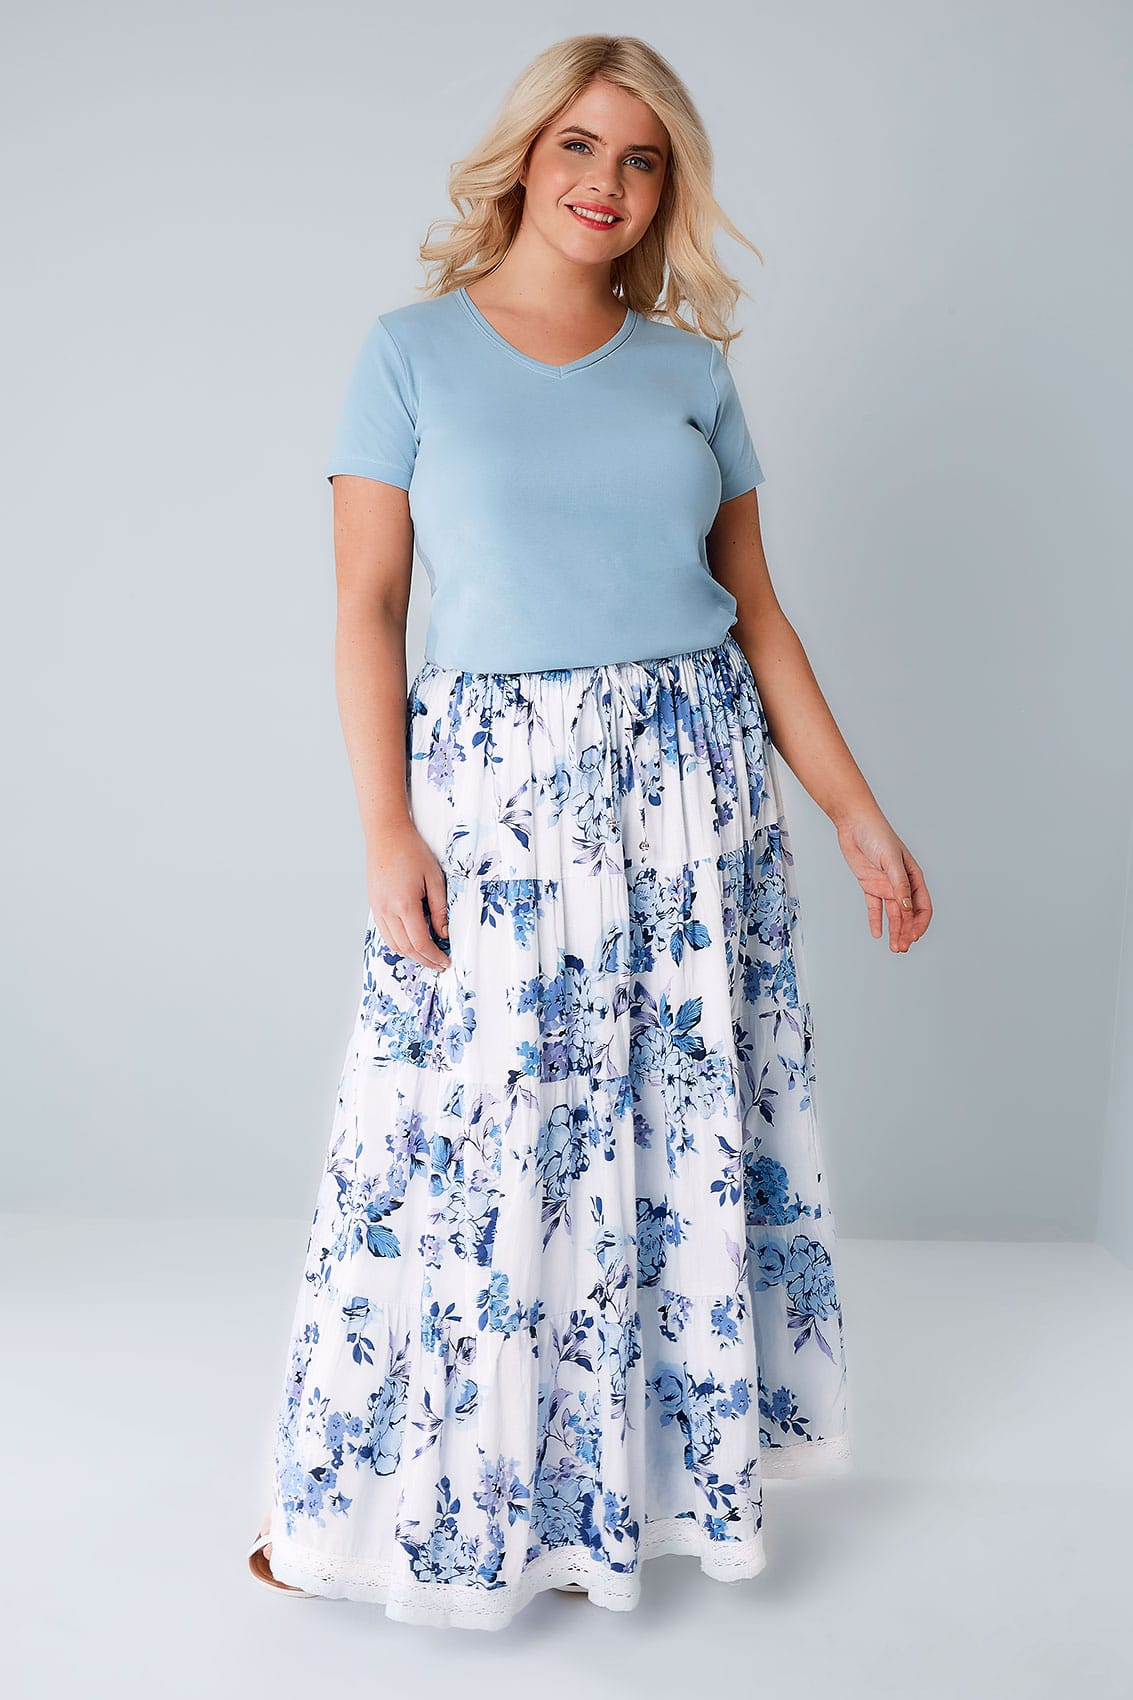 5f91e6342 BLUE & WHITE FLORAL PRINT TIERED MAXI SKIRT WITH LACE TRIM HEM PLUS SIZE 16  TO 36 on The Hunt